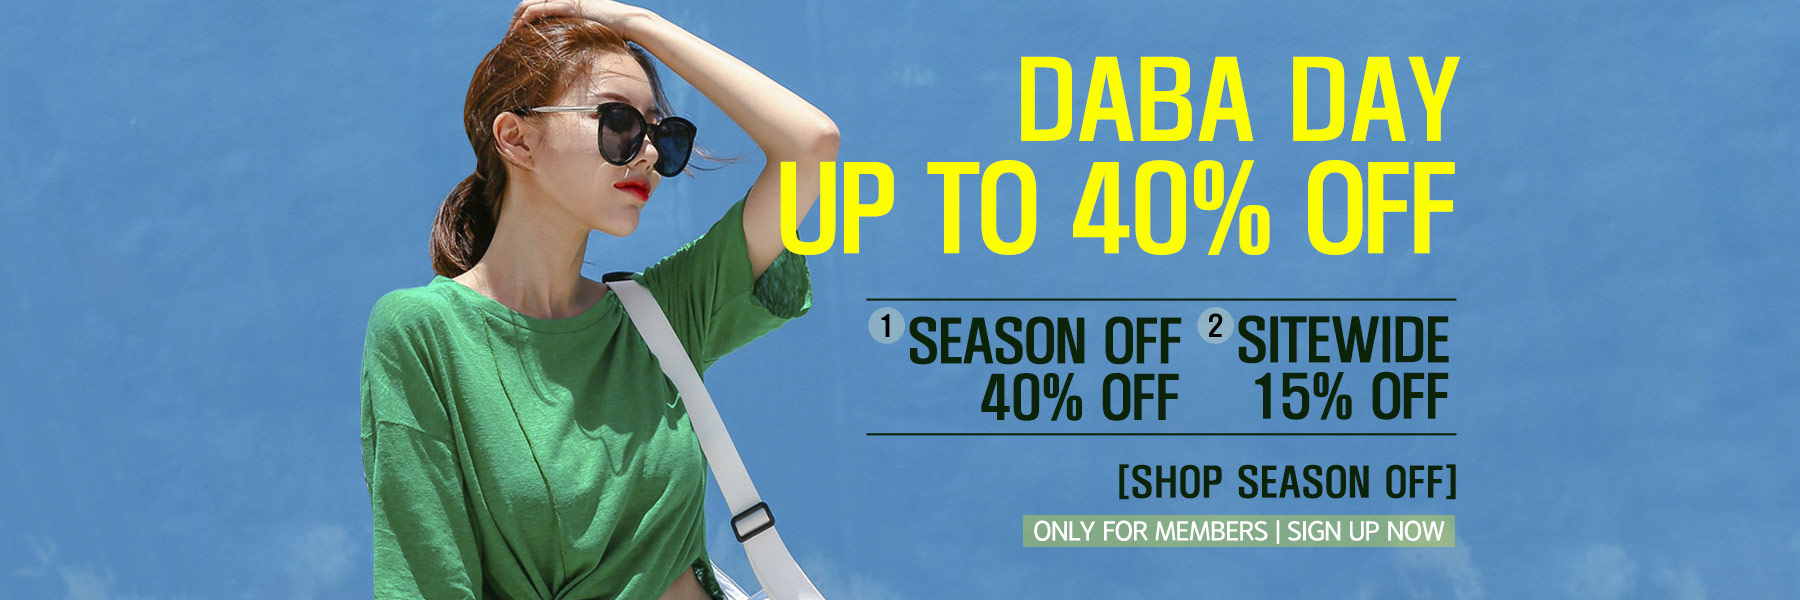 0716 daba day sale